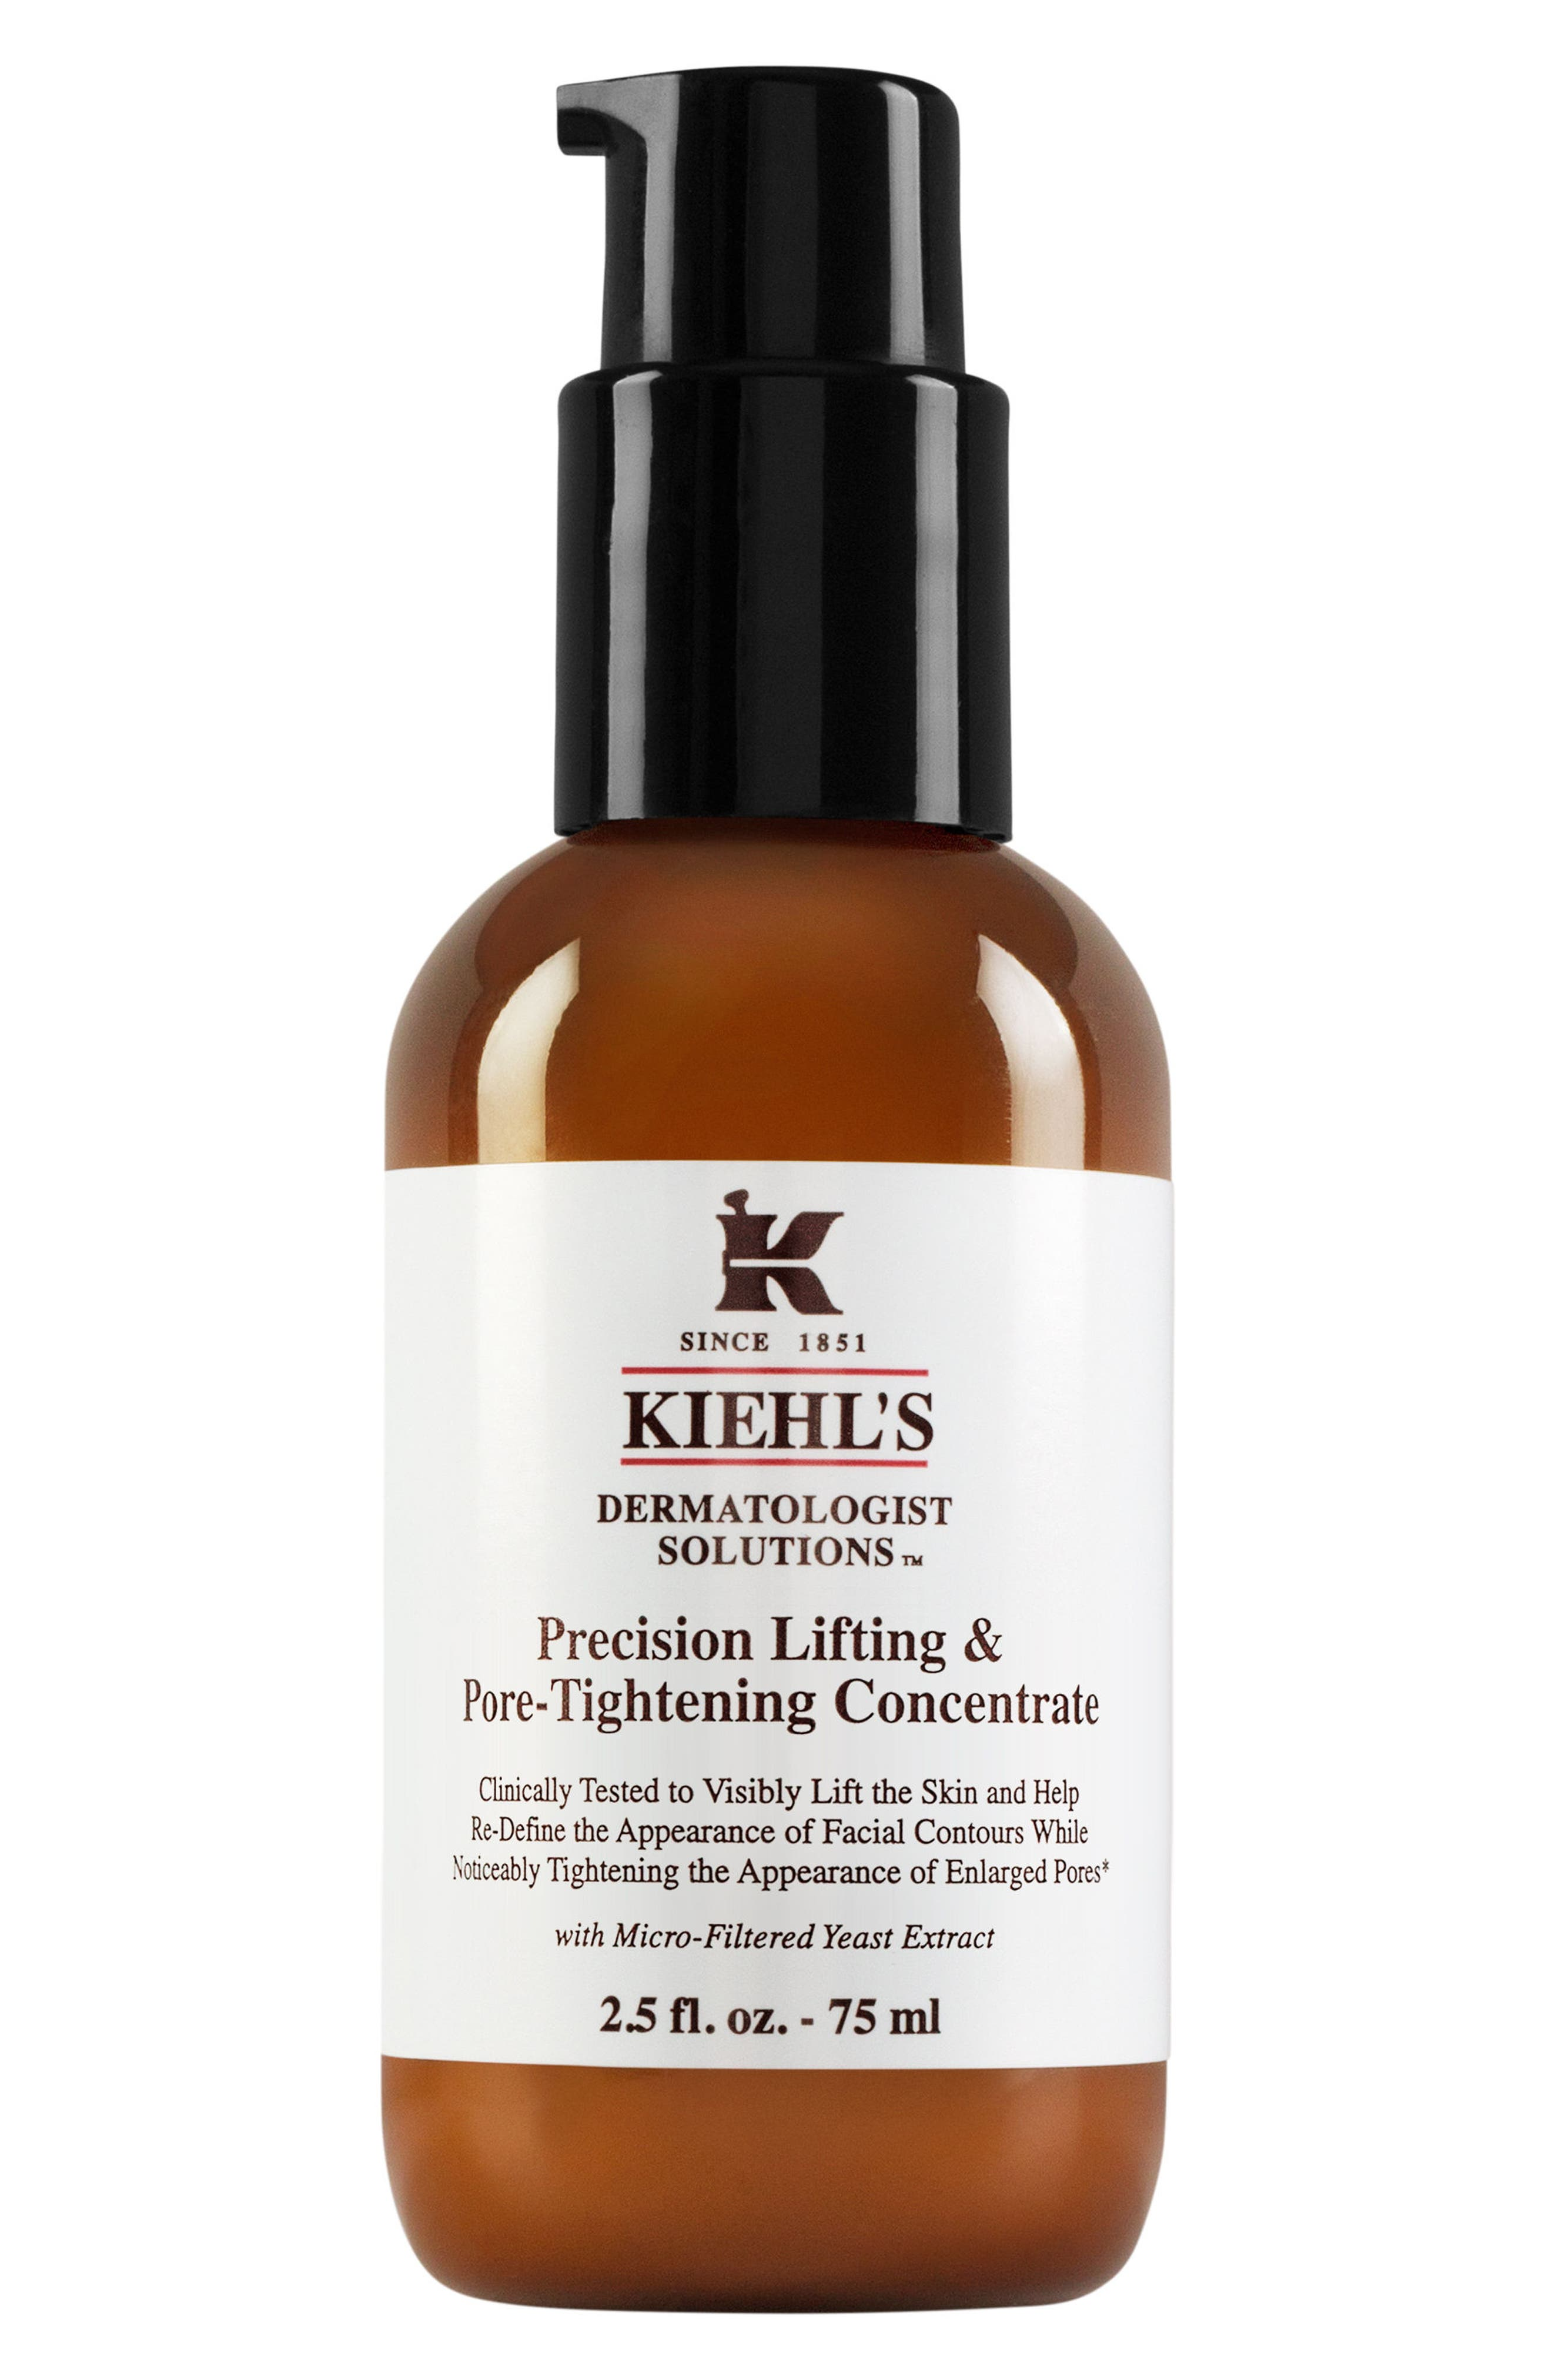 Kiehl's Since 1851 'Dermatologist Solutions™' Precision Lifting & Pore-Tightening Concentrate